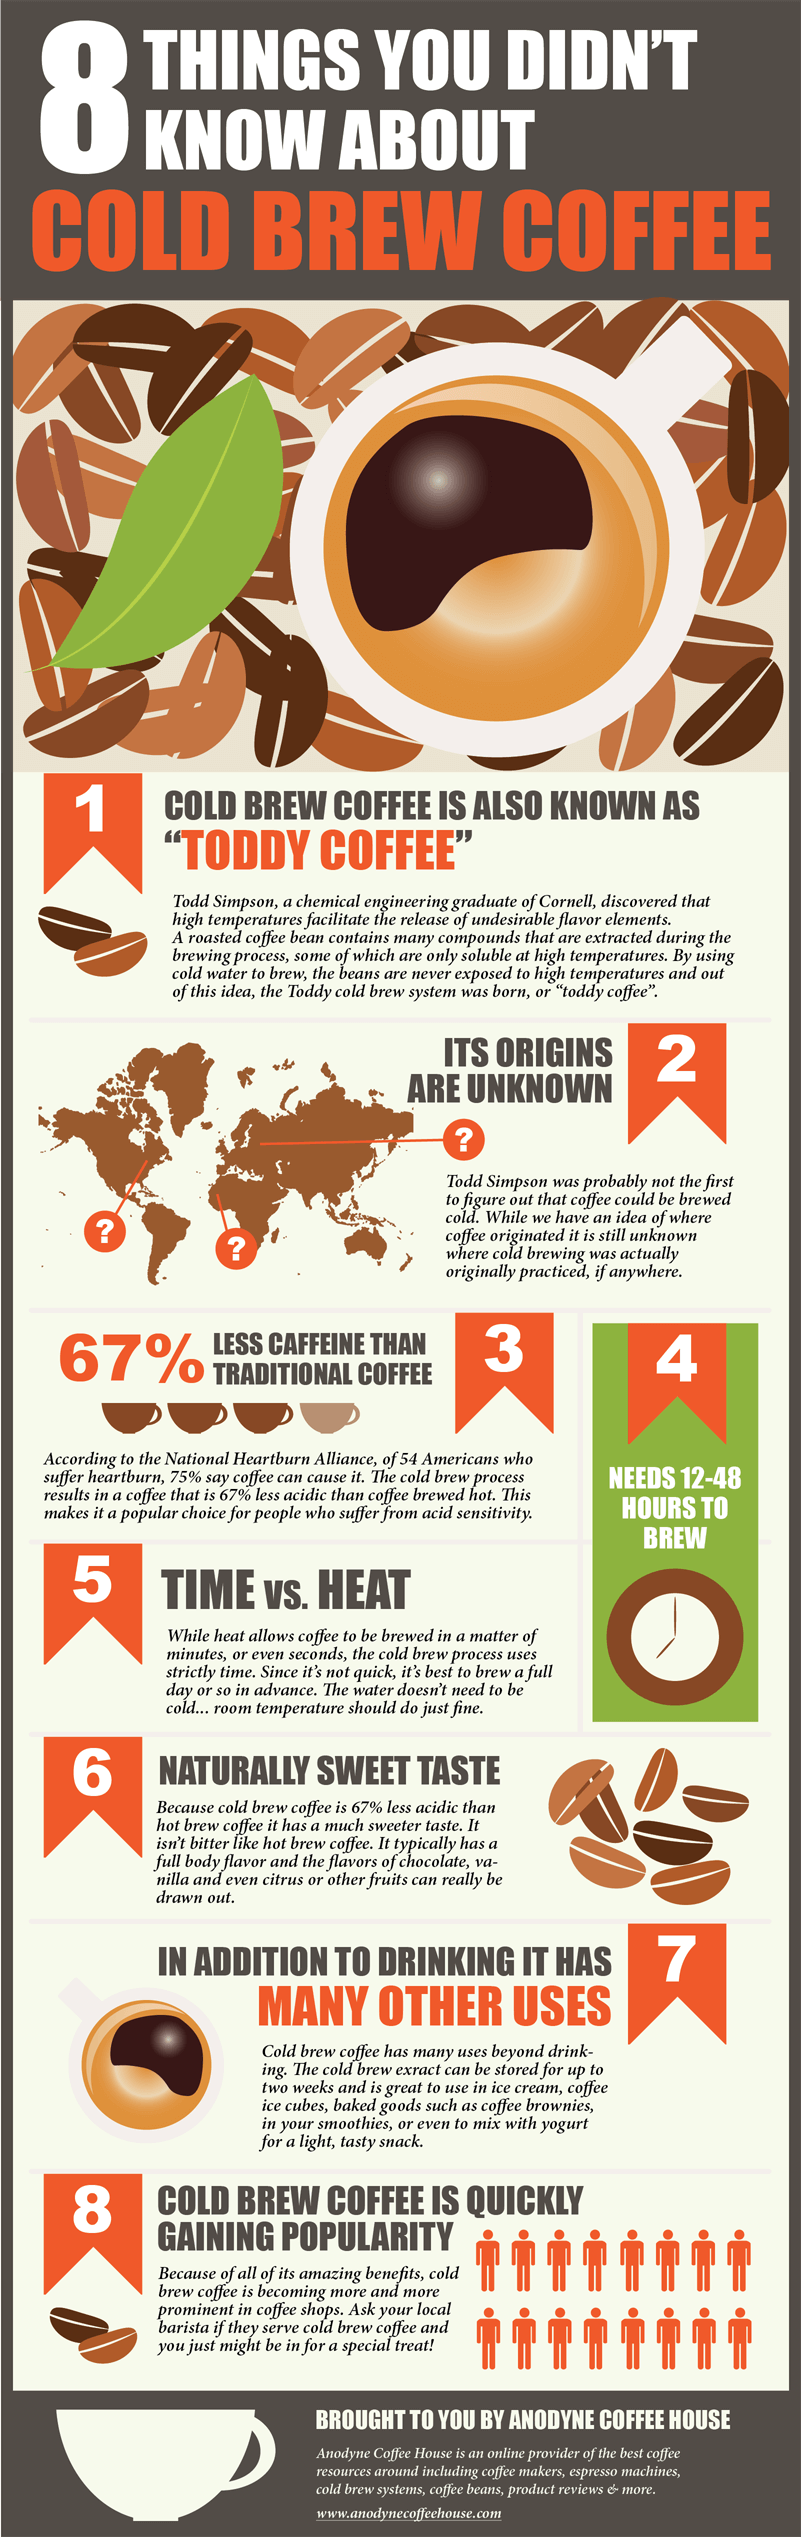 cold-brew-facts-infographic